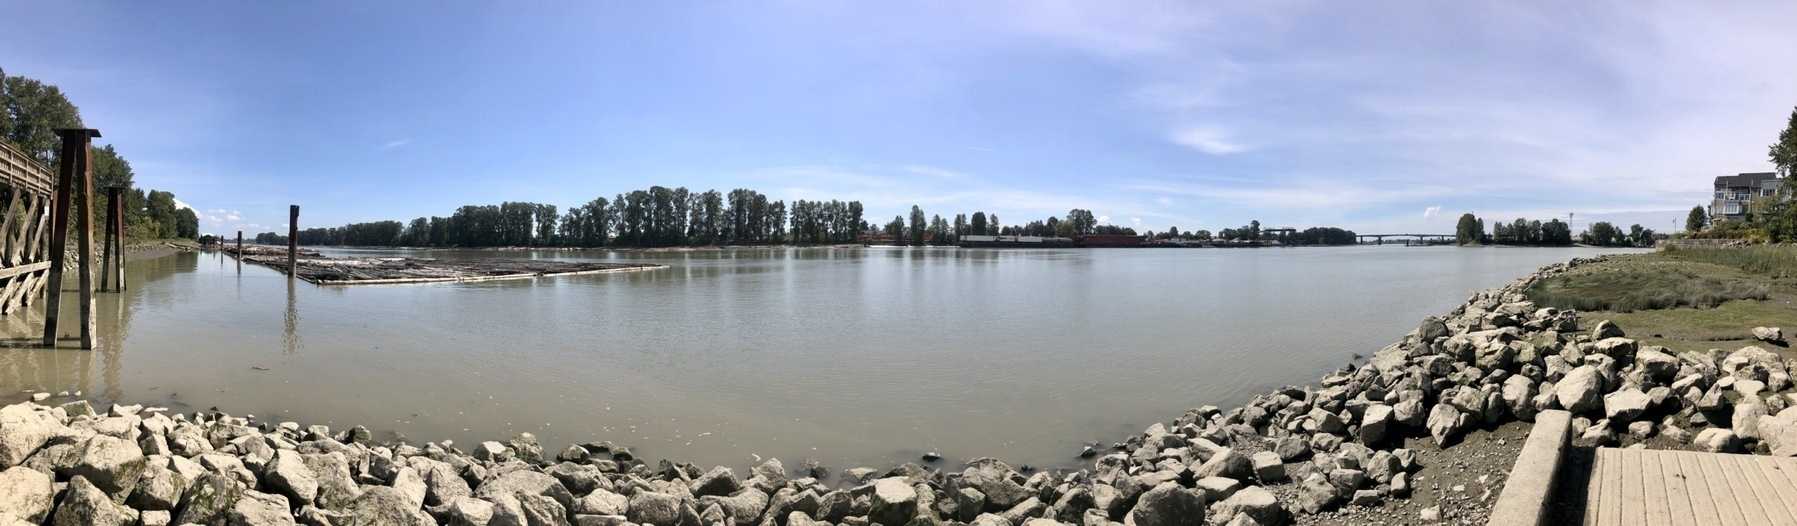 Panorama at Gladstone-Riverside Park, Vancouver - looking at Fraser River